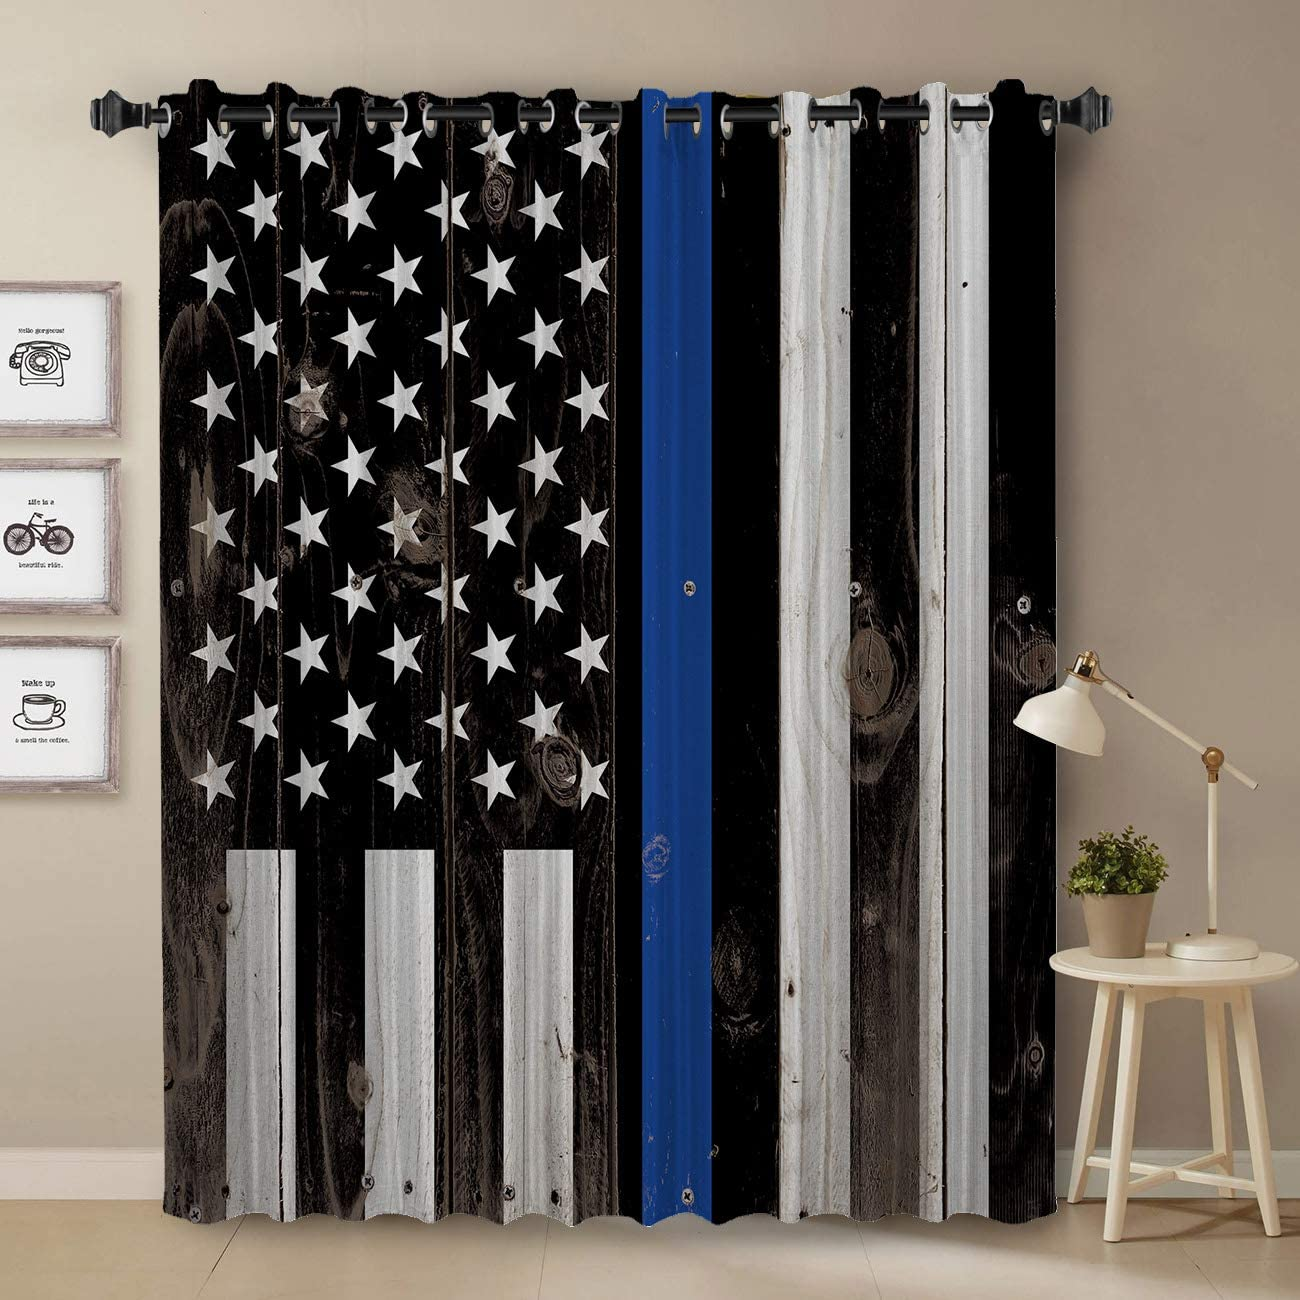 Police Curtain, Rustic Thin Blue Line US Flag Curtain for Bedroom, Room Darkening Blackout Curtain for Living Room Thermal Insulated with Grommet Window Curtain, 52 by 63 Inch